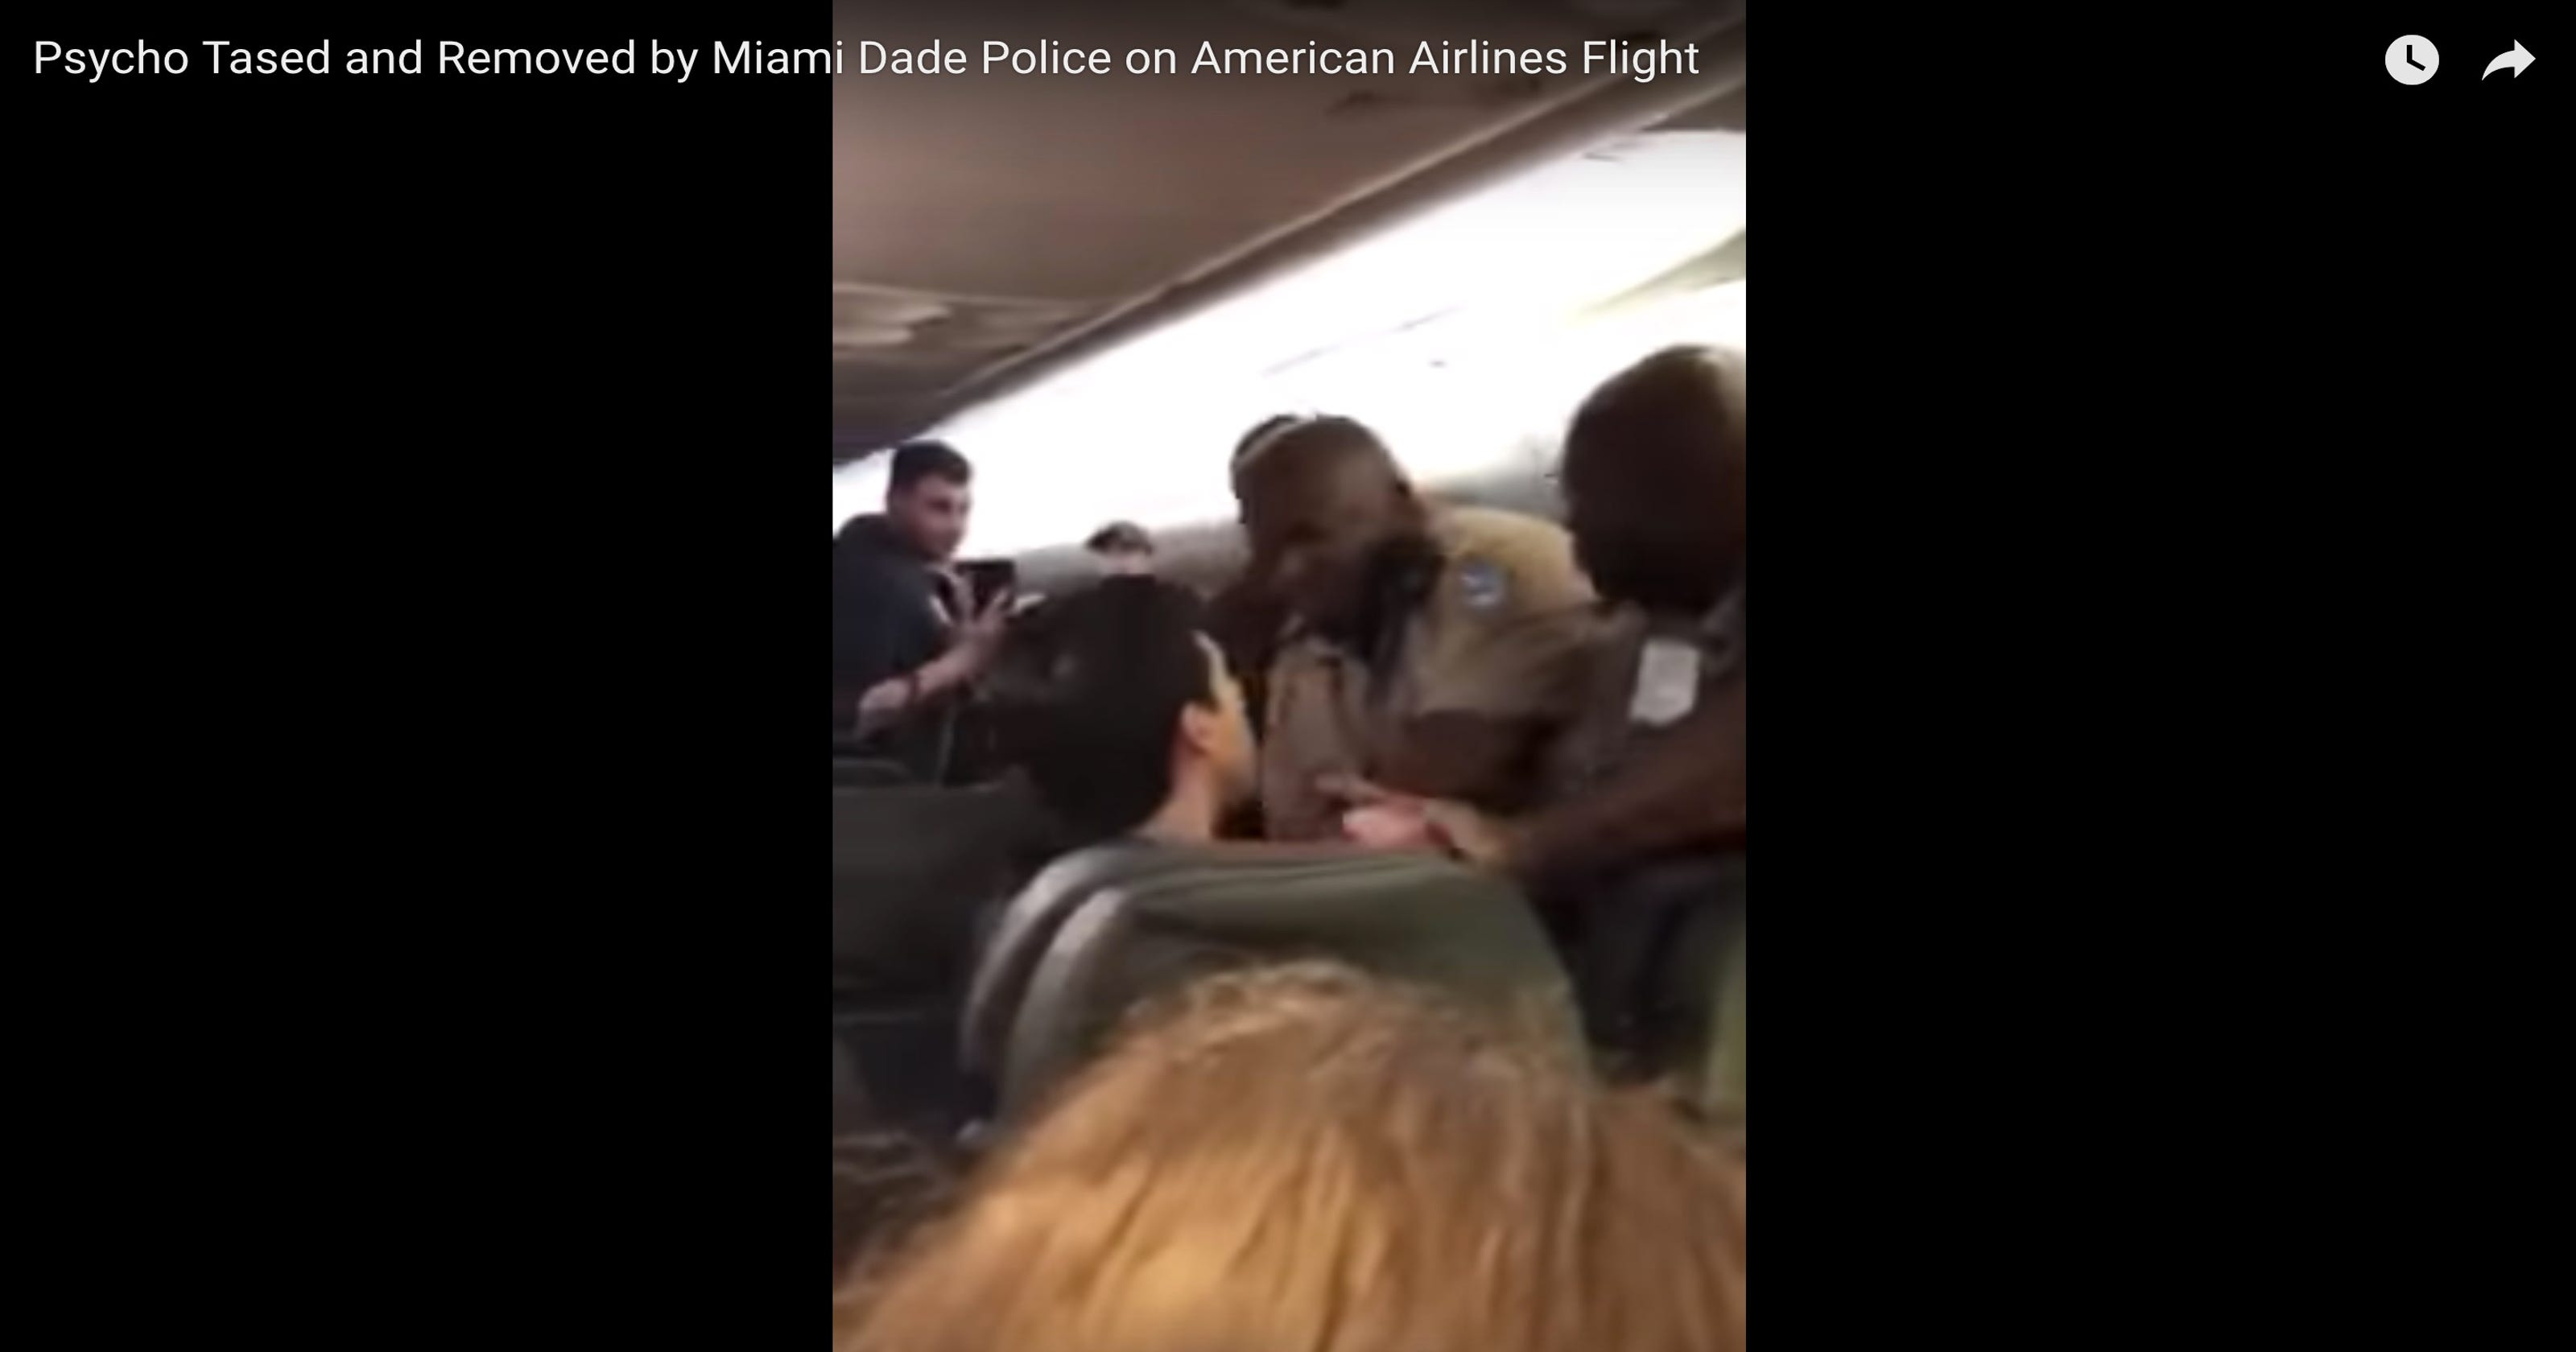 American Airlines passenger tased 10 times, removed from plane